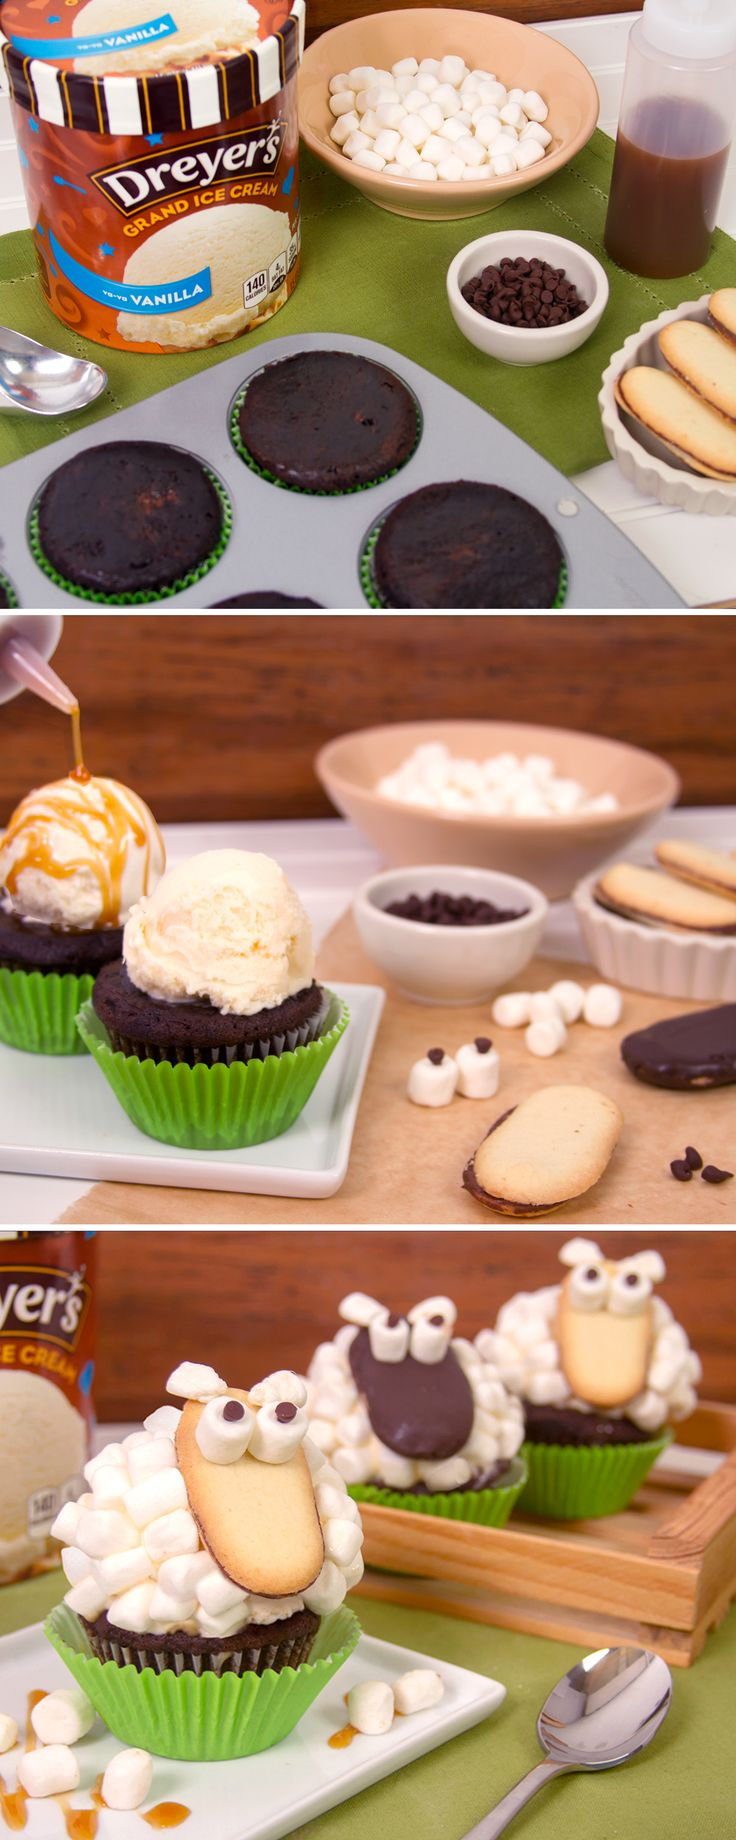 """Dreyer's Ice Cream Marshmallow Sheep: Your kids will love it, and so will you – create them together, go on and make a few! Place a scoop of Dreyer's Grand Vanilla Ice Cream on top of a cupcake with a green wrapper. Drizzle caramel over top. Then, stick mini marshmallows onto the Ice Cream to create the """"wool"""" of the sheep. Use cookies and candies to create the face!"""